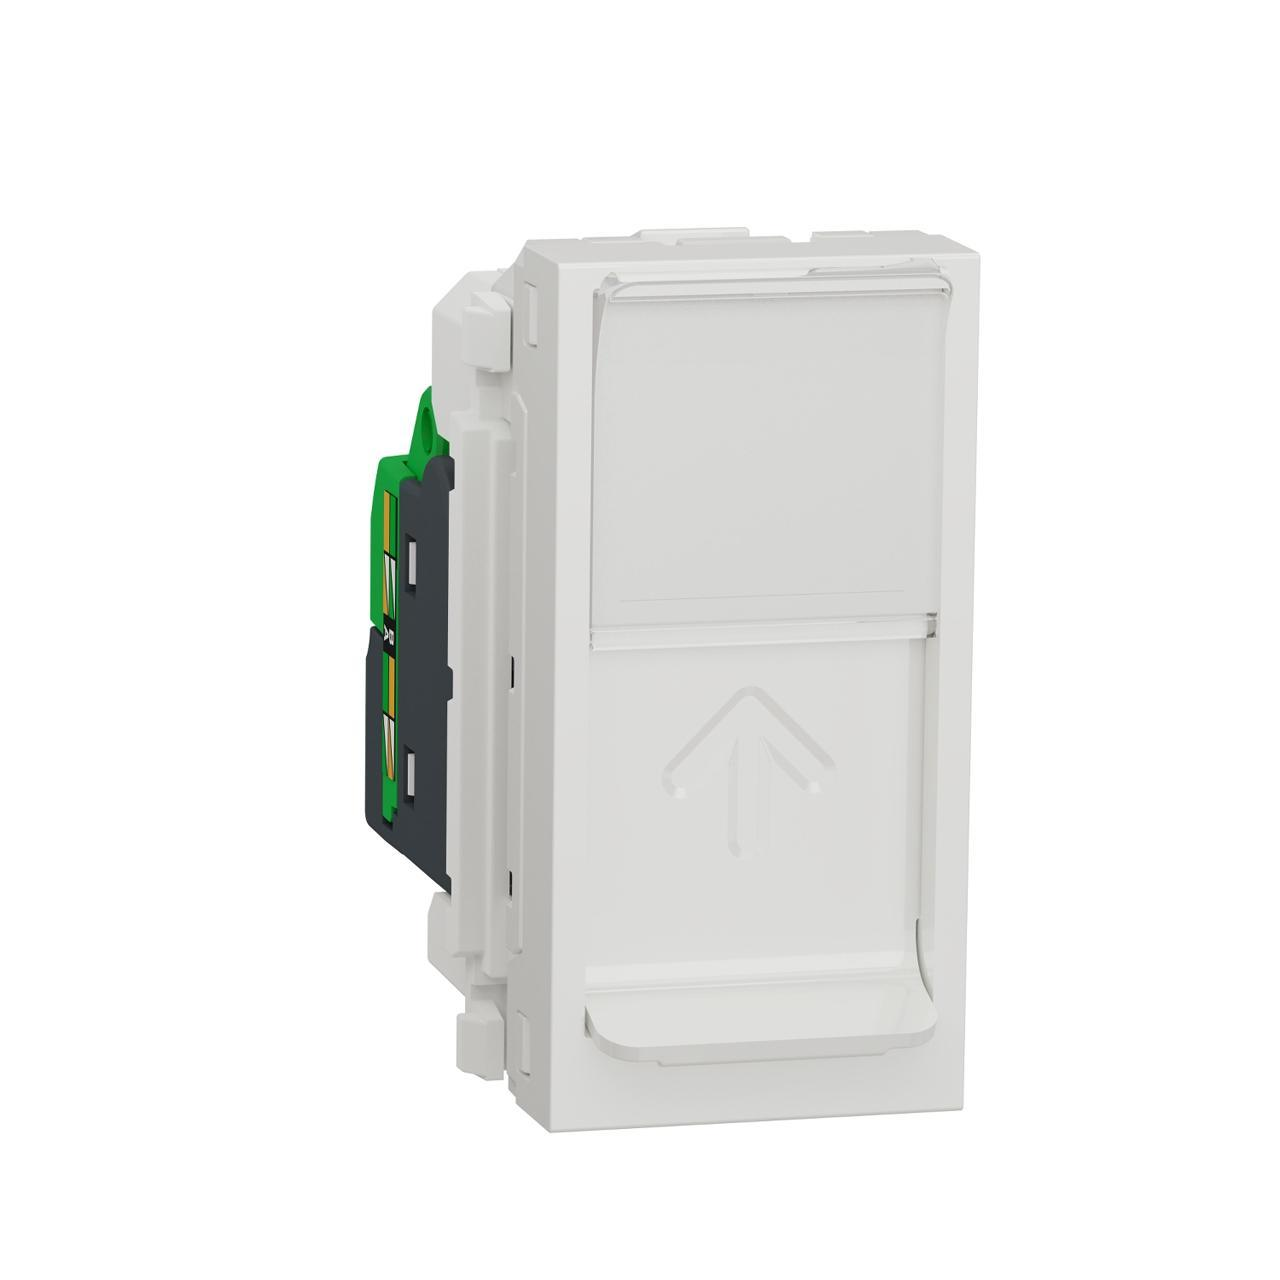 Розетка компьютерная RJ45 Schneider Electric Unica Modular Cat. 5e STP NU341218